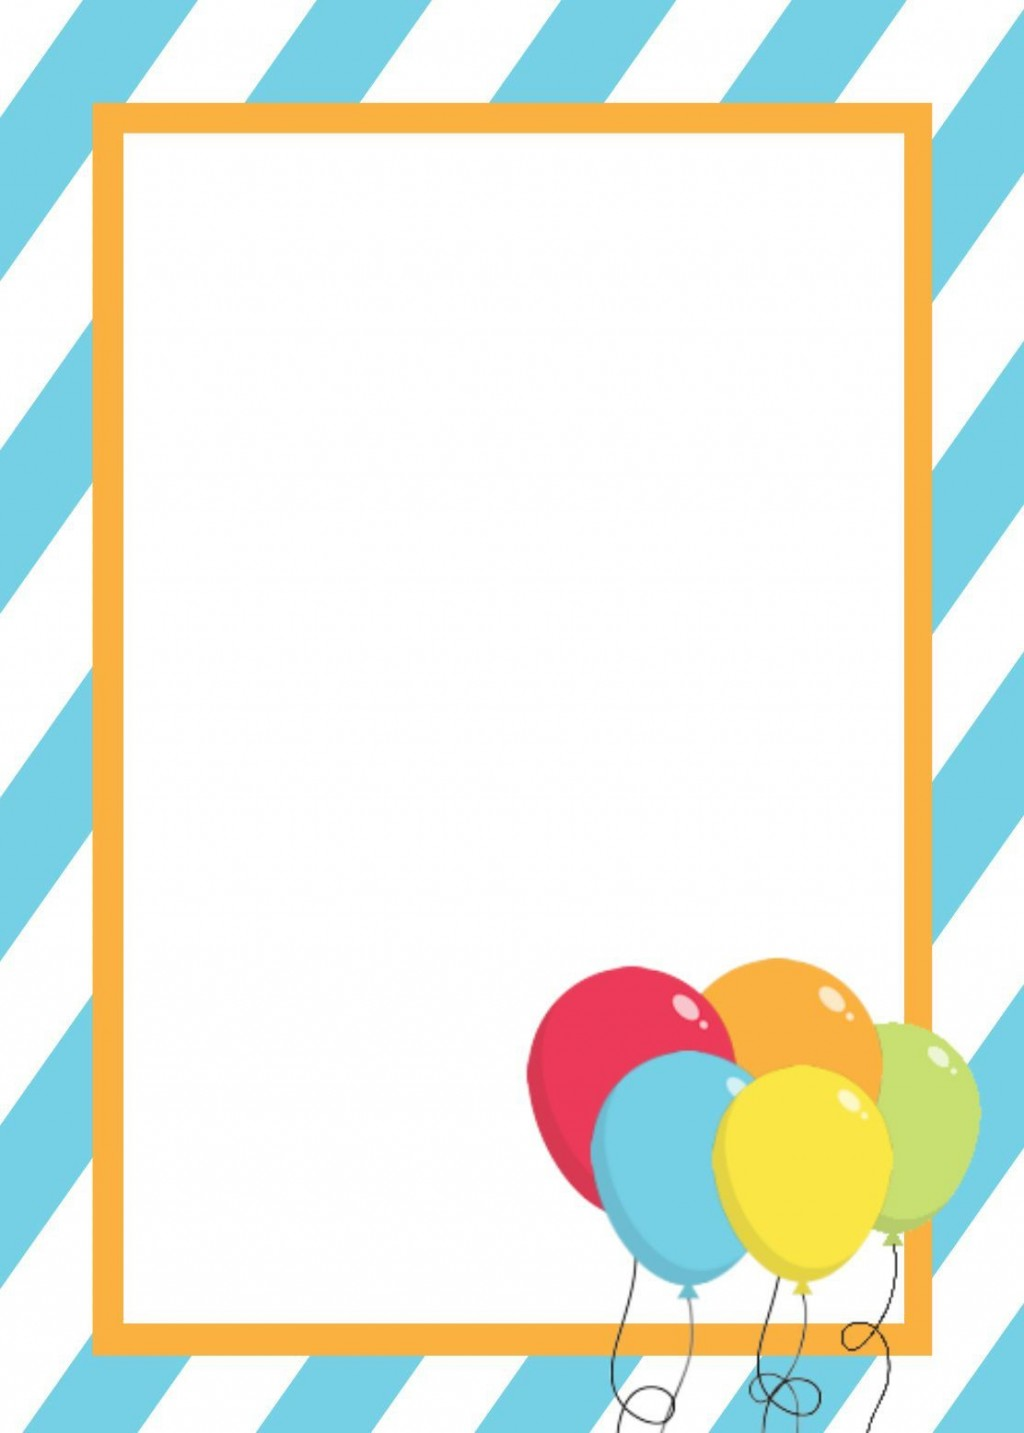 002 Stunning Blank Birthday Card Template For Word Photo  FreeLarge